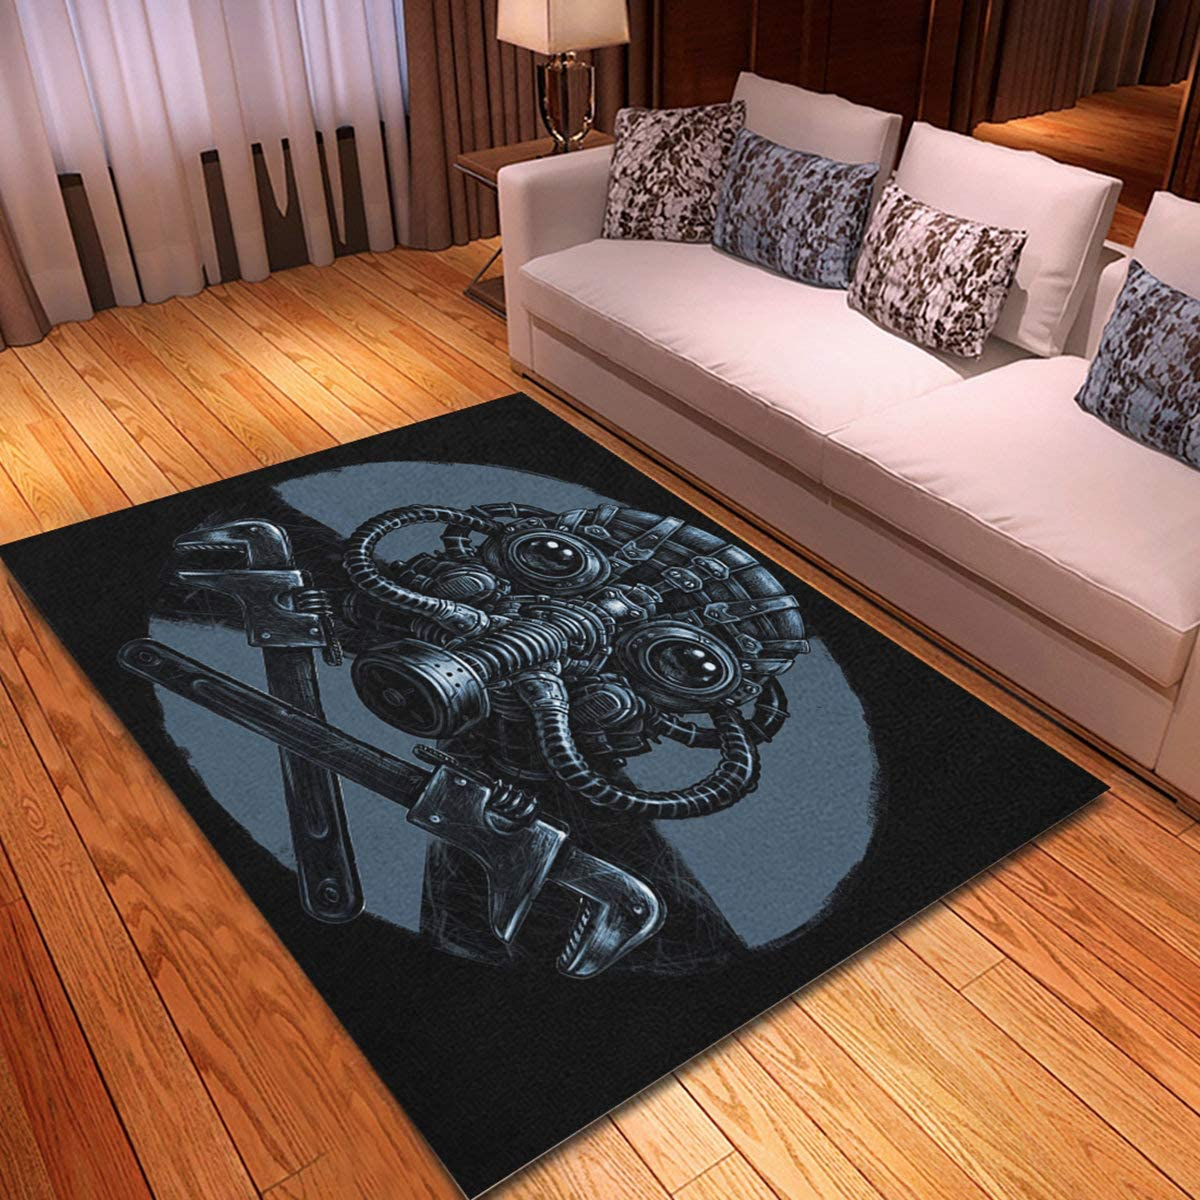 rouihot Non-Slip Area Special price for a Our shop most popular limited time Rug 4'x 6' Steampunk To Biohazard Mask Gas